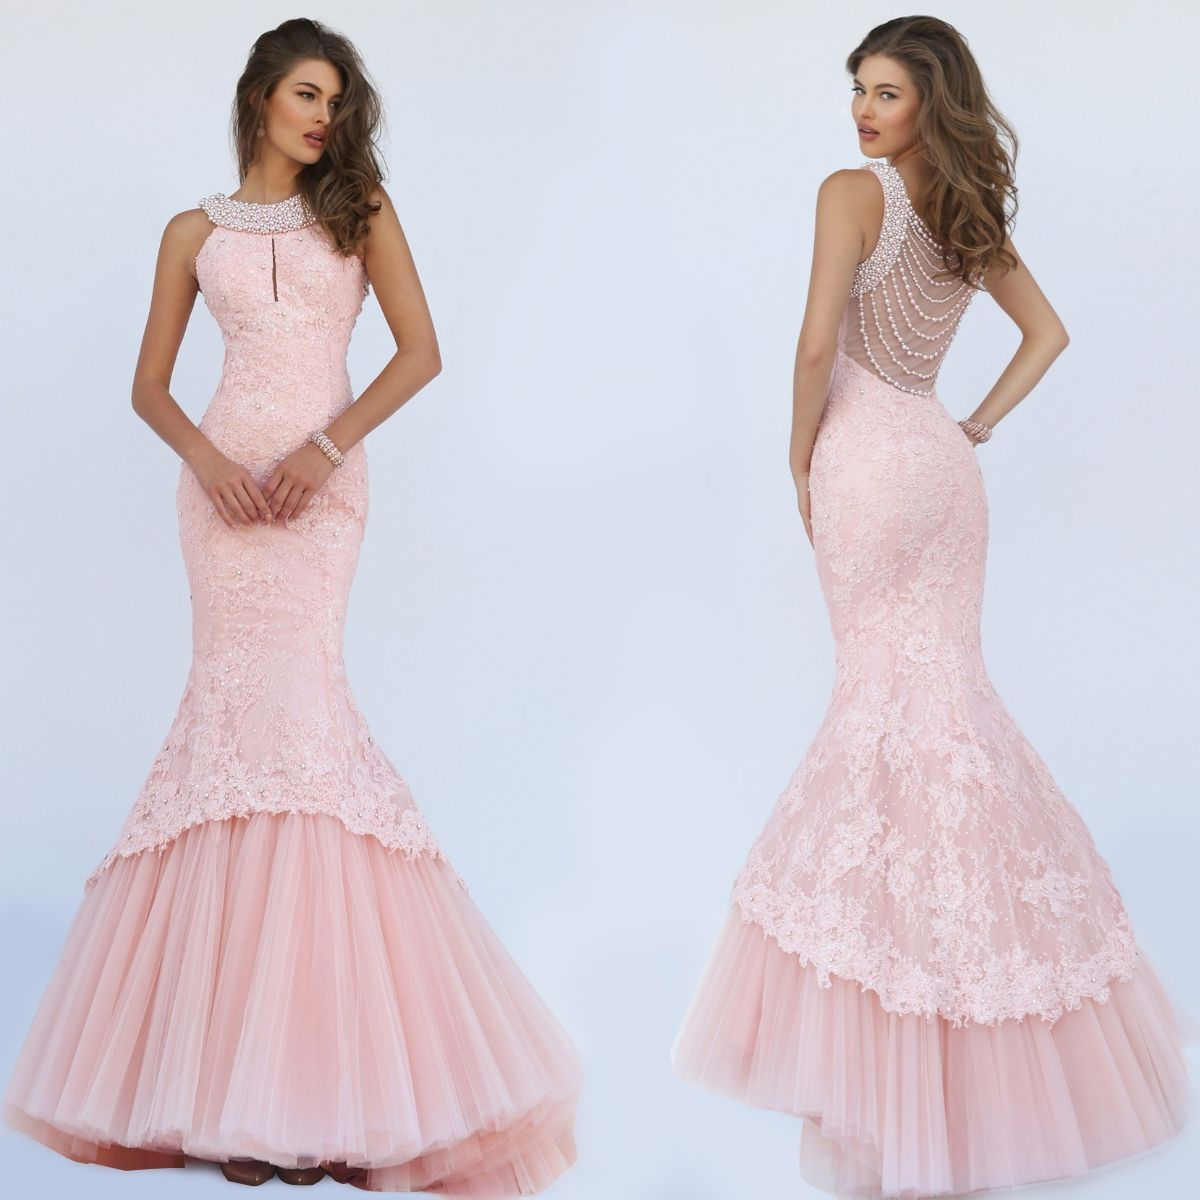 Sherri hill lace mermaid dress design idea board pinterest